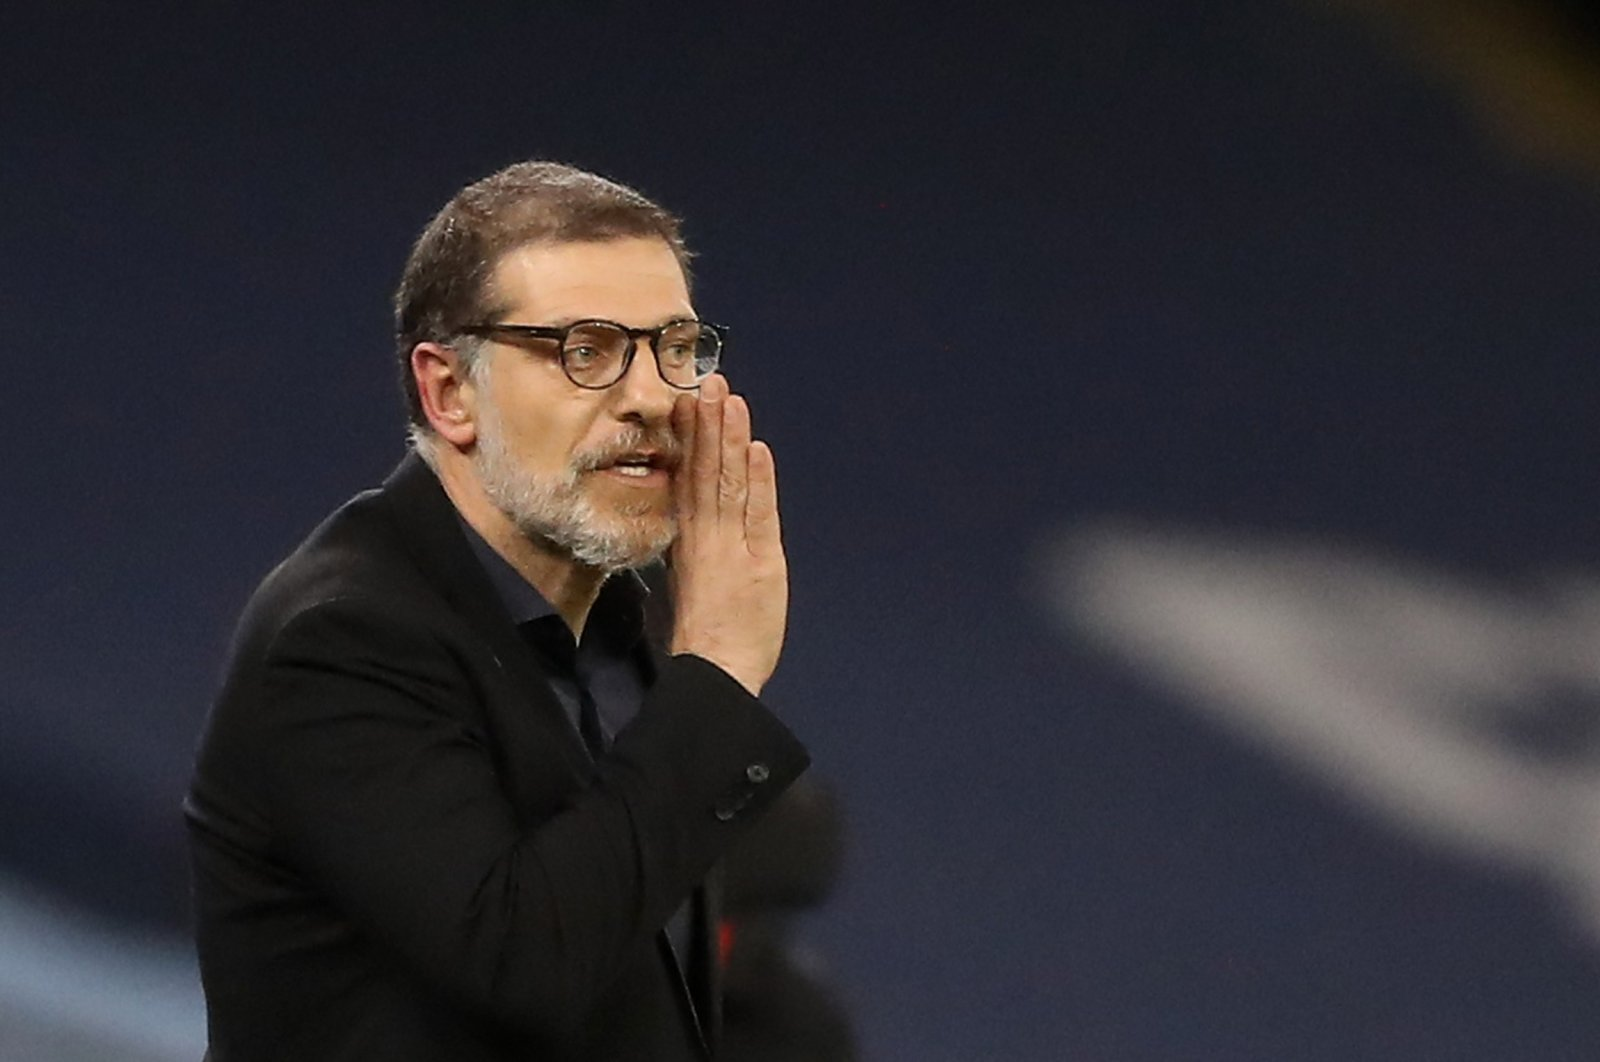 West Bromwich Albion manager Slaven Bilic reacts during a Premier League match against Manchester City at the Etihad Stadium in Manchester, Britain, Dec. 15, 2020. (Reuters Photo)